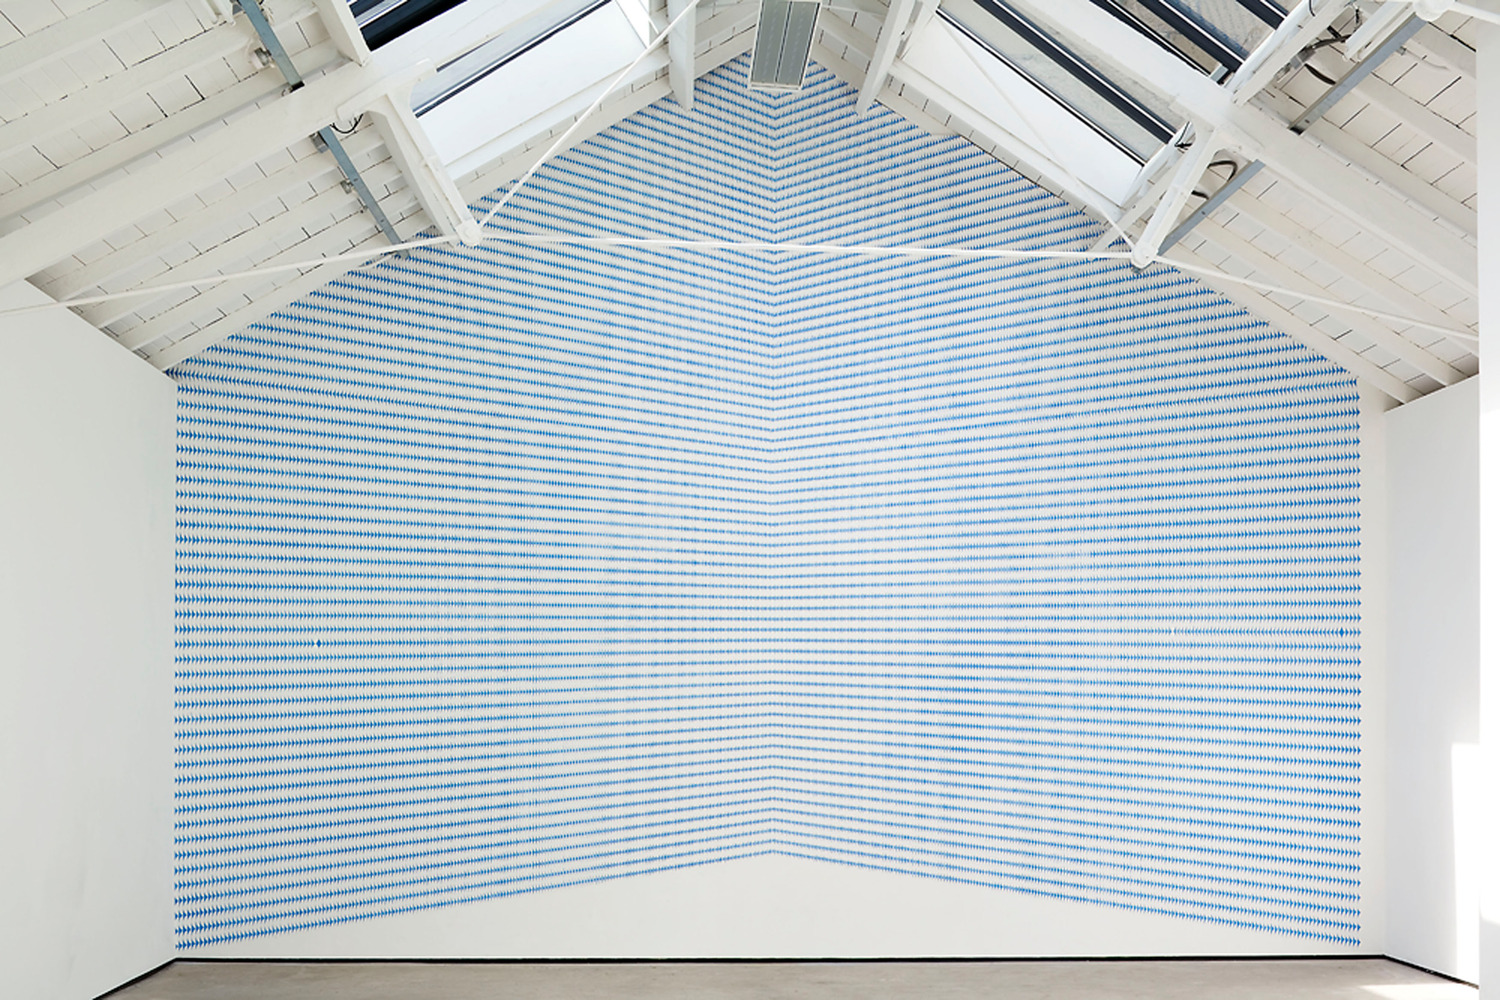 Richard Wright, No Title, 2010, Gouache on wall, Dimensions Variable